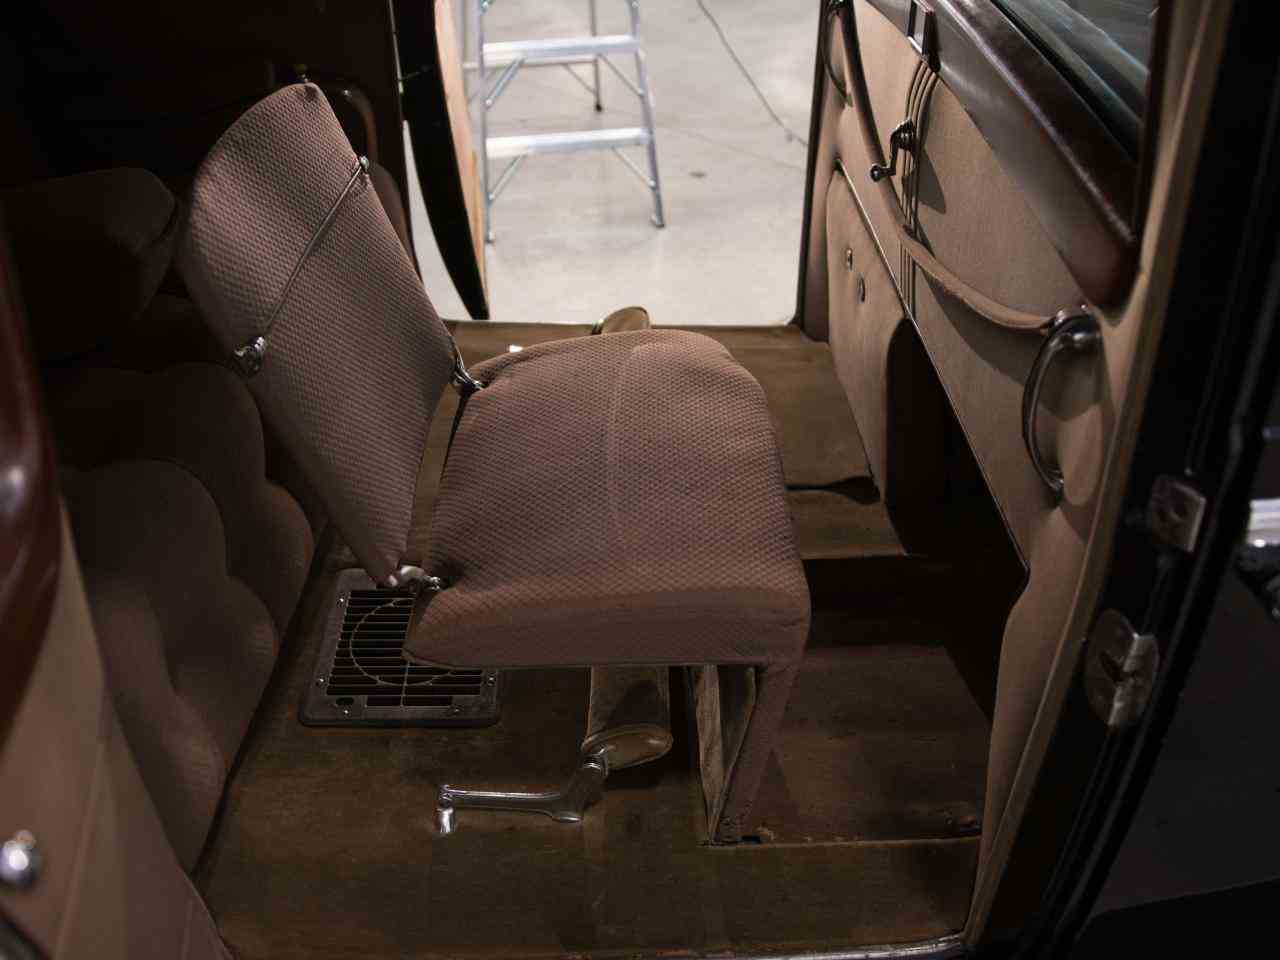 Large Picture of Classic 1939 Cadillac 7 Passenger Touring W/ Trunk located in Wisconsin - $58,000.00 Offered by Gateway Classic Cars - Milwaukee - KHP0